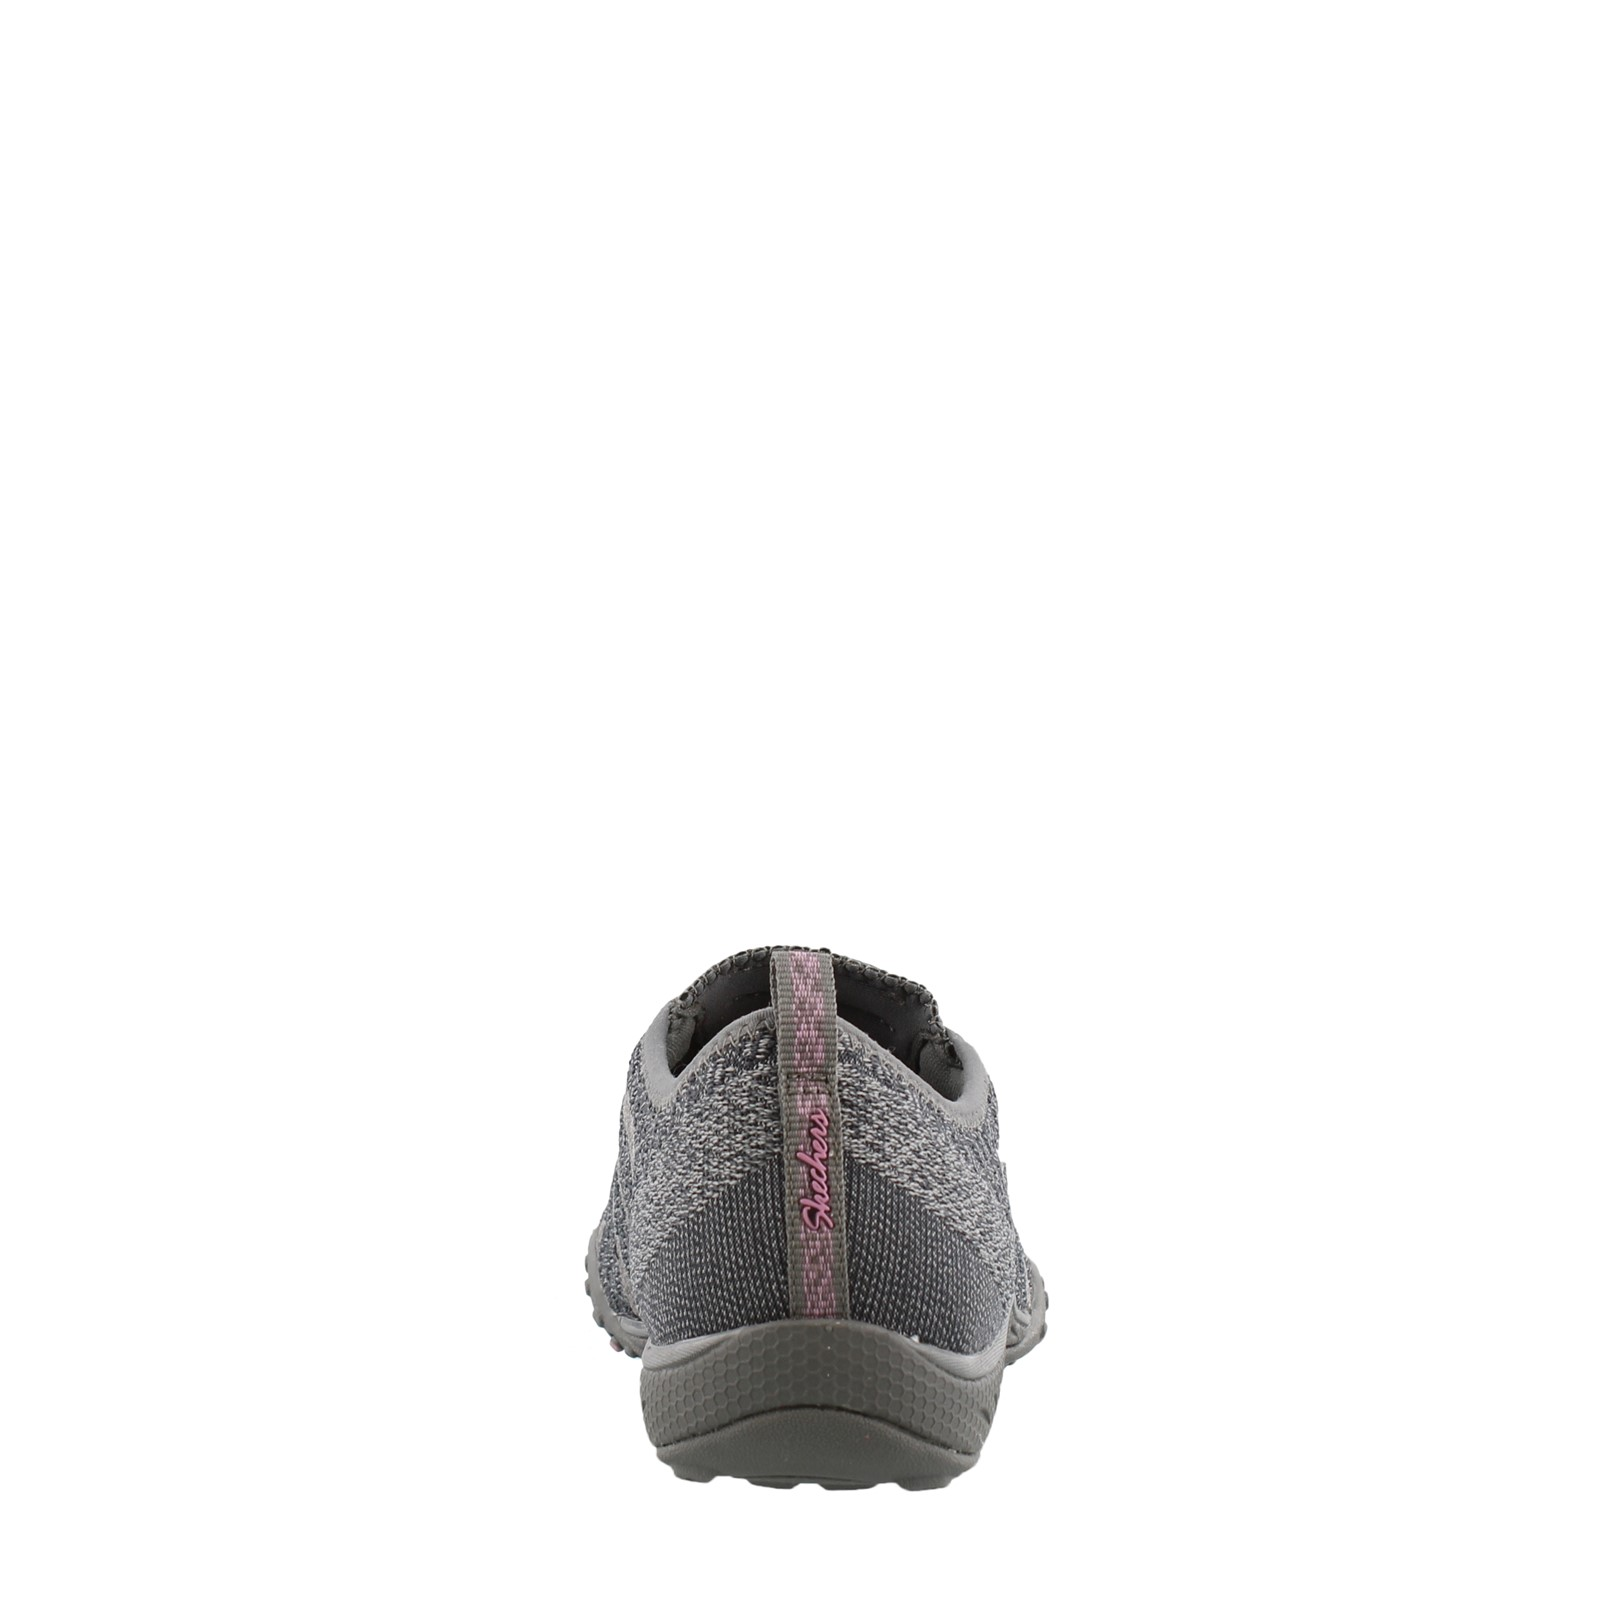 0838db64b9b Next. add to favorites. Women's Skechers, Relaxed Fit Breathe Easy Fortune- Knit